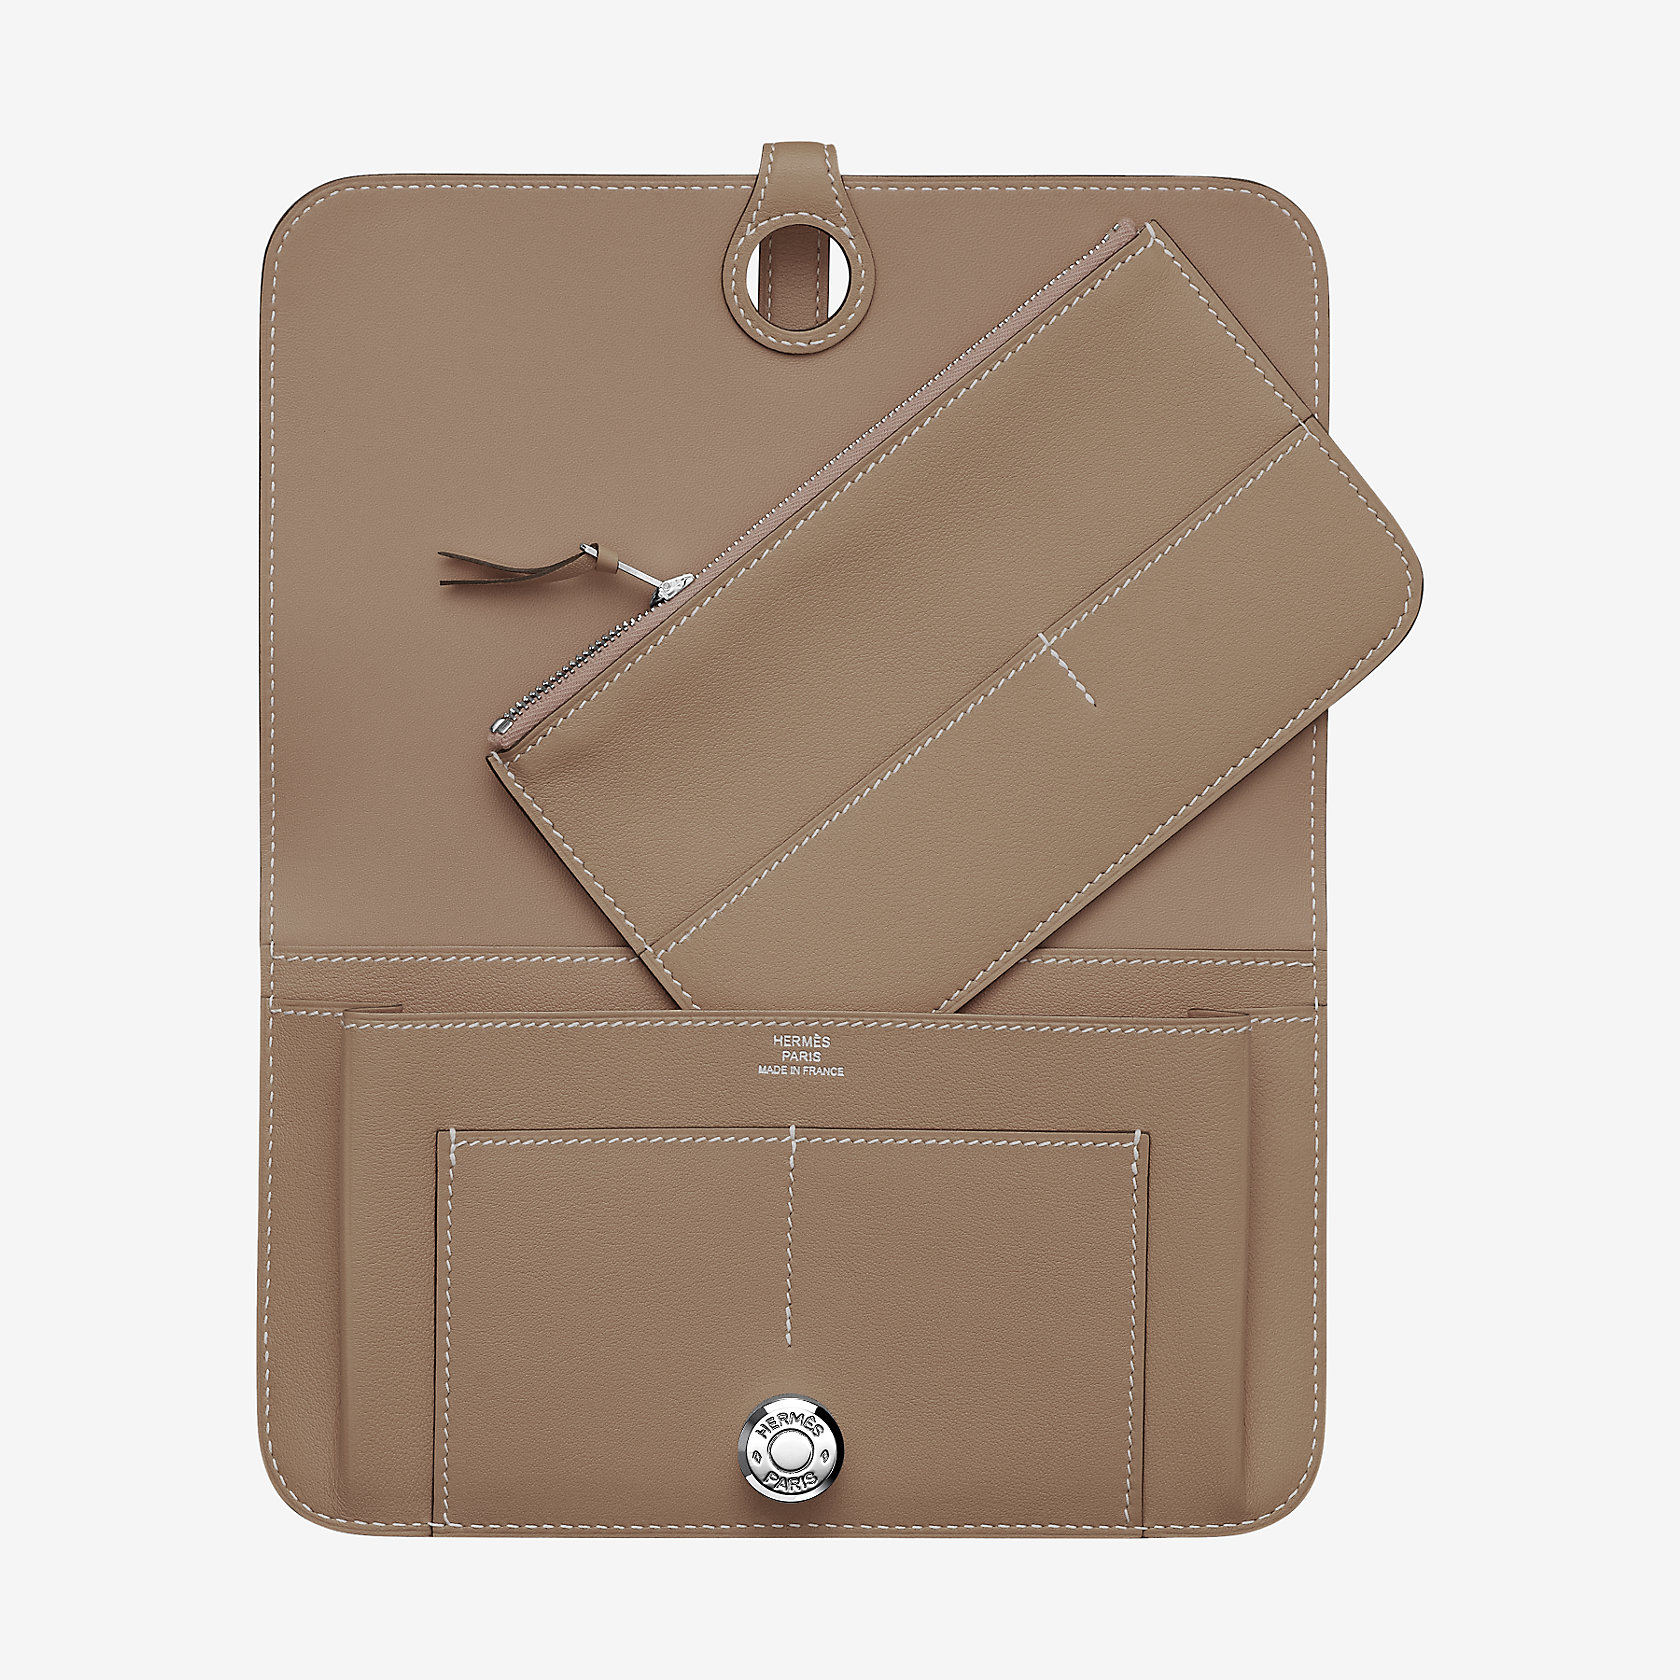 Hermes delivery slots